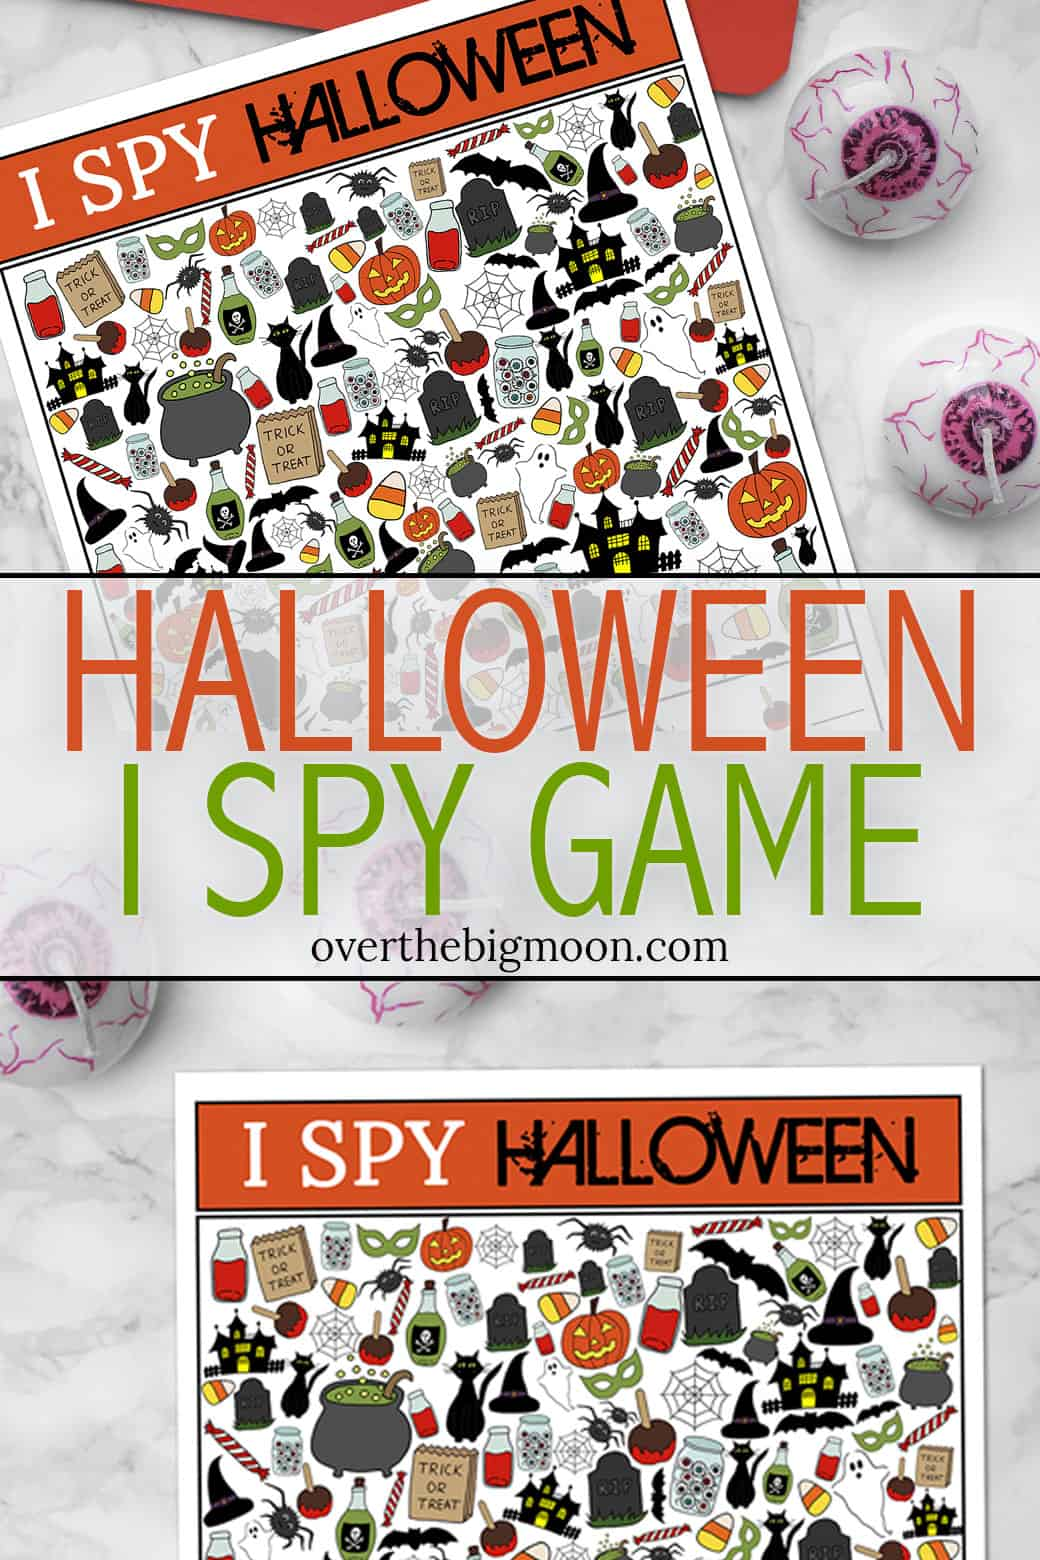 Halloween I Spy Game Printable for kids! From overthebigmoon.com!